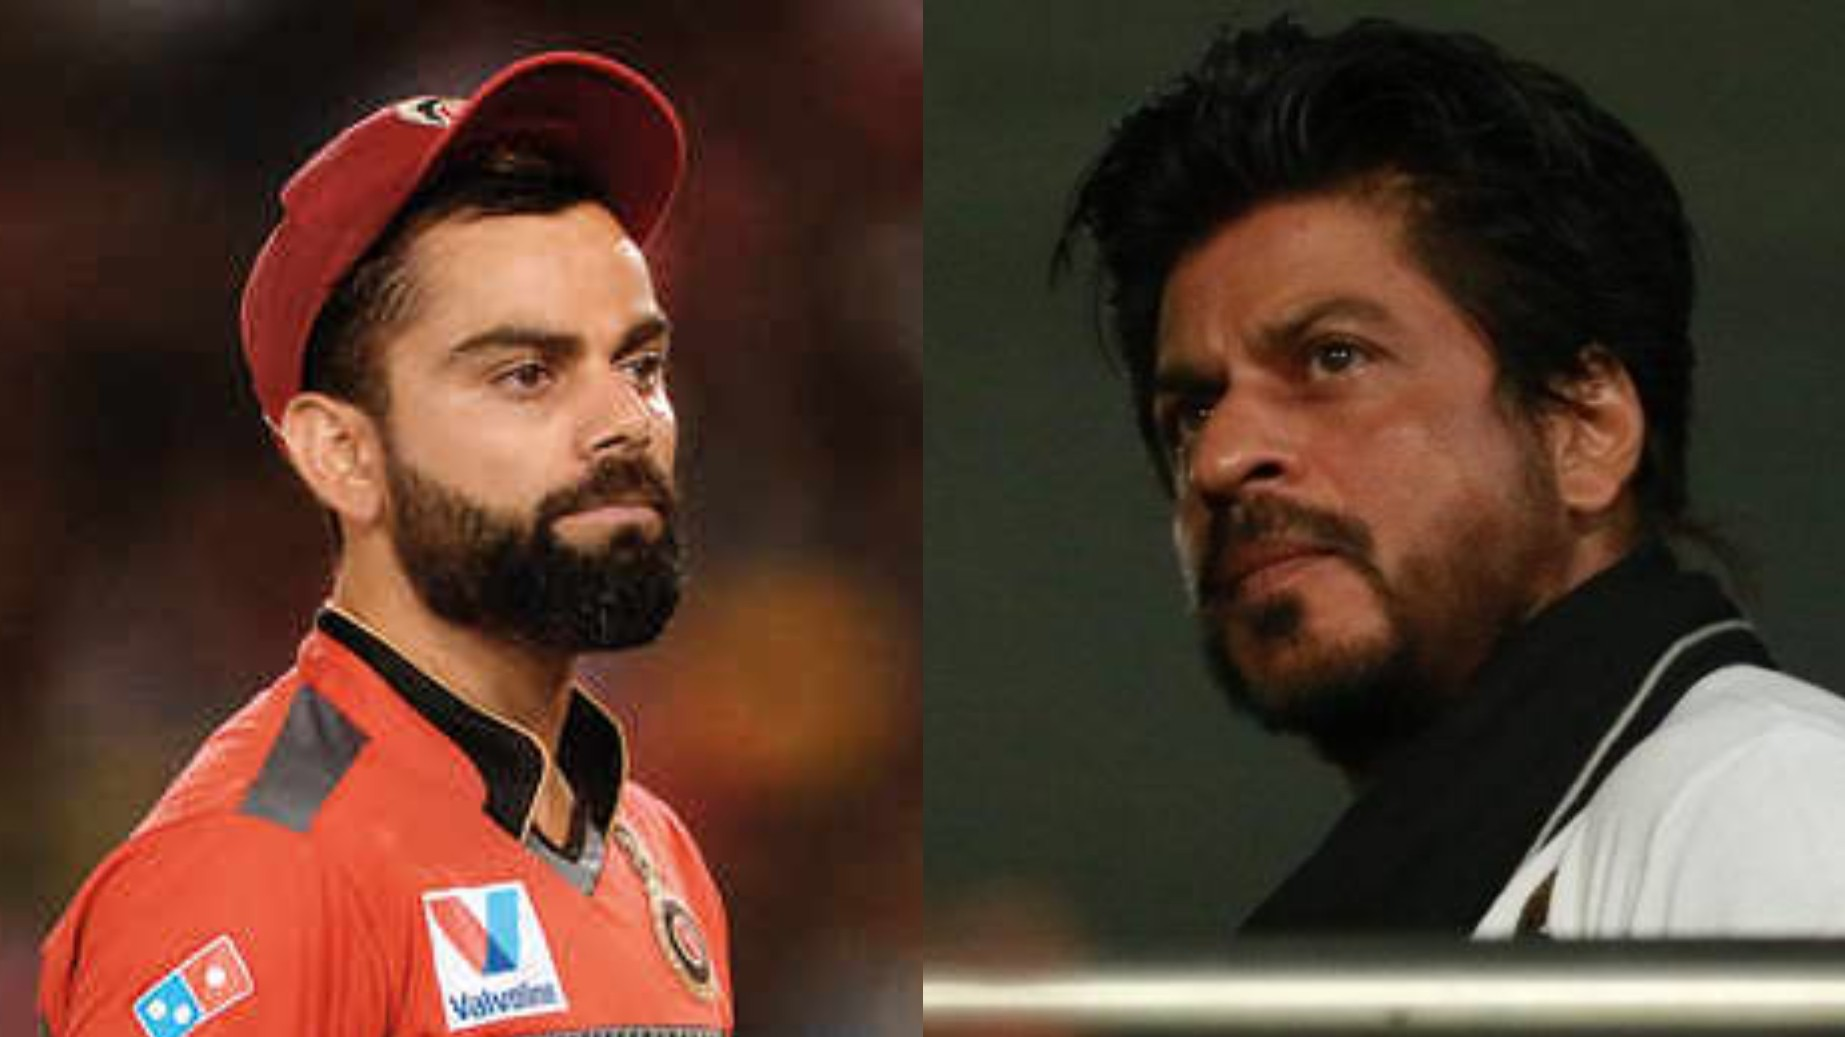 IPL: Royal Challengers Bangalore and Kolkata Knight Riders losing brand value due to poor performances